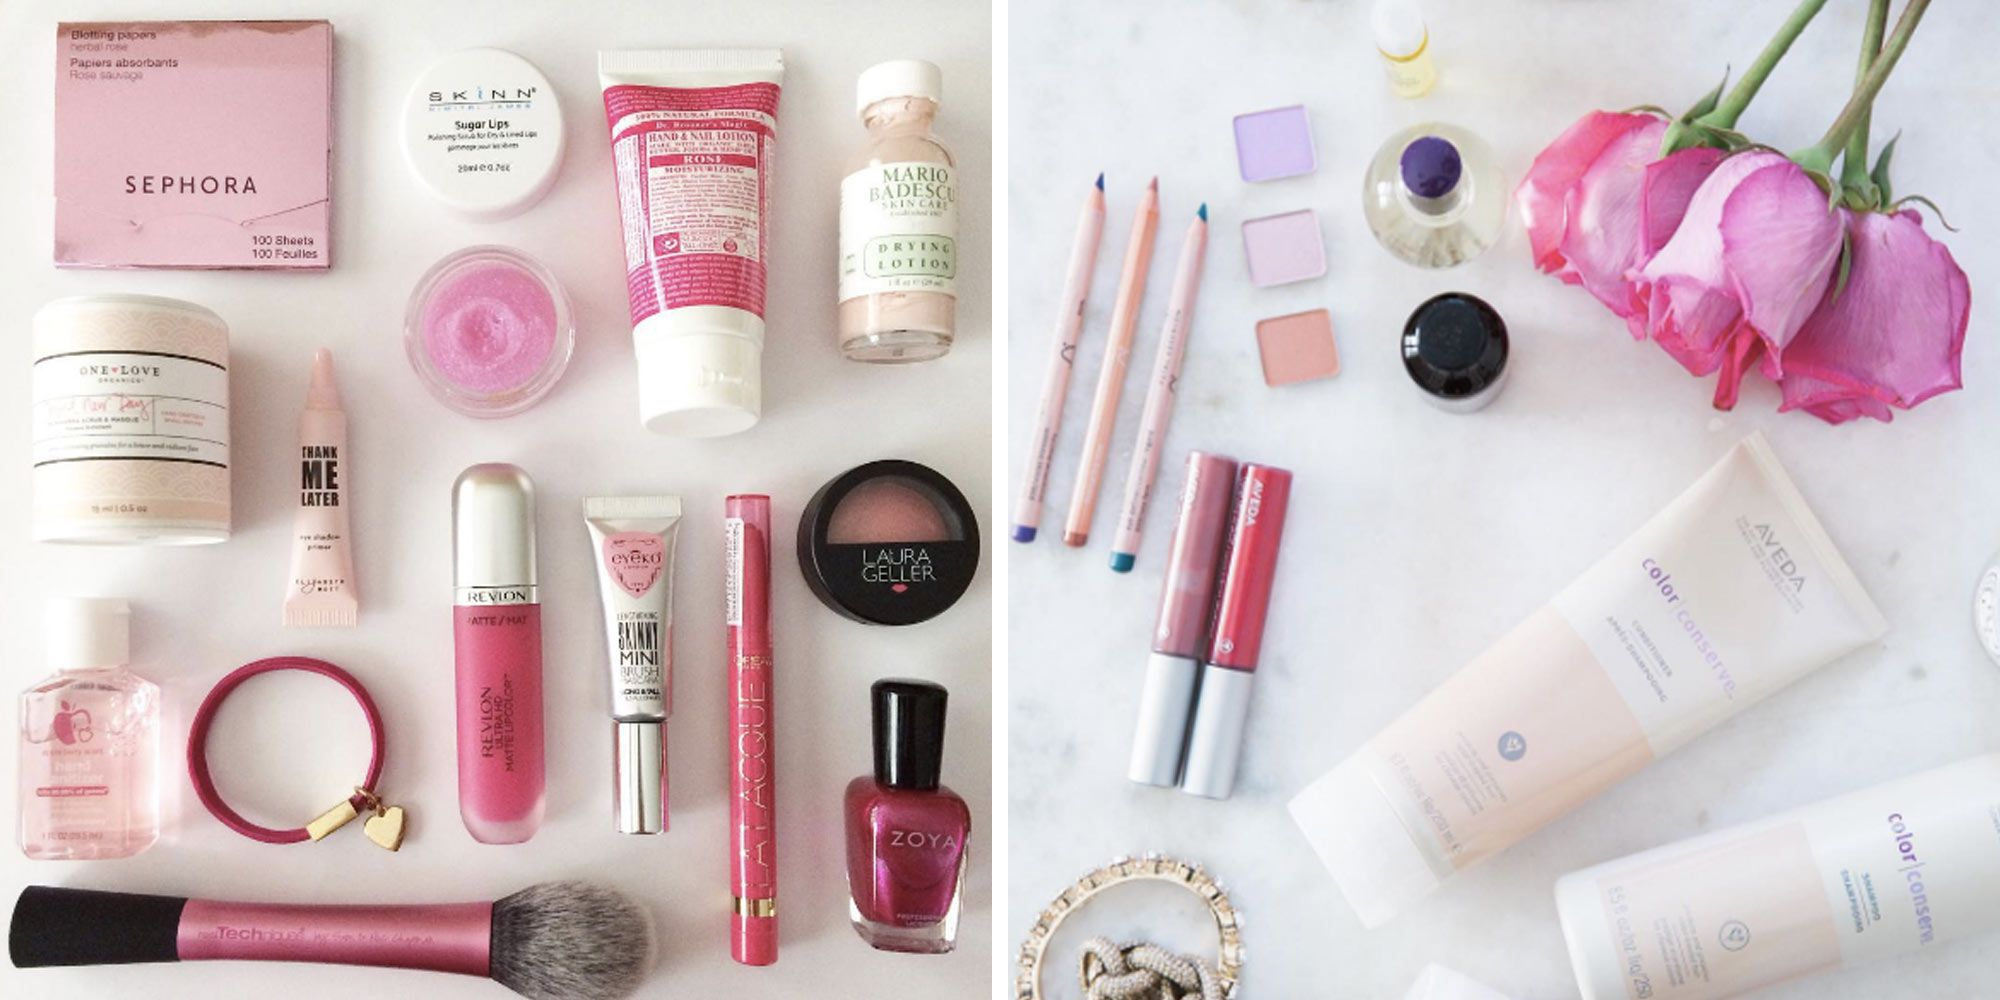 6 Places To Score Free Beauty Samples